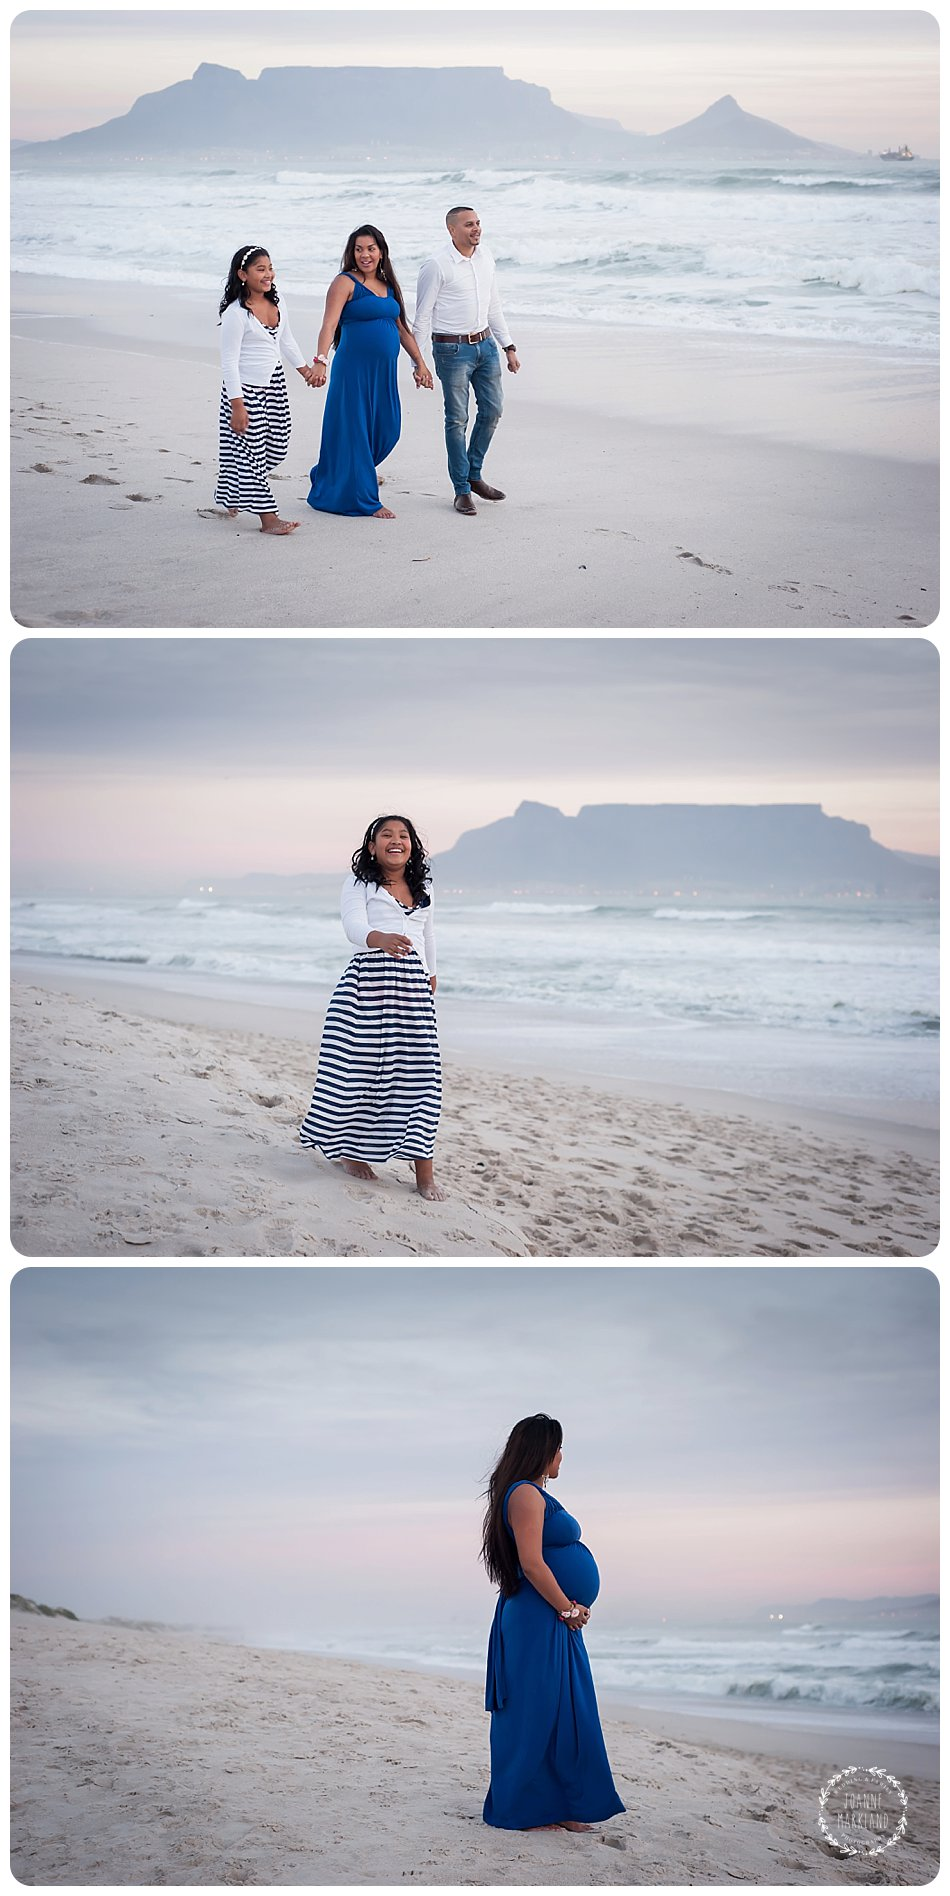 studio portraits, studio maternity portraits, maternity portraits, preggie belly,family, baby bump, joanne markland photography, cape town maternity photographer, newborn photographer cape town